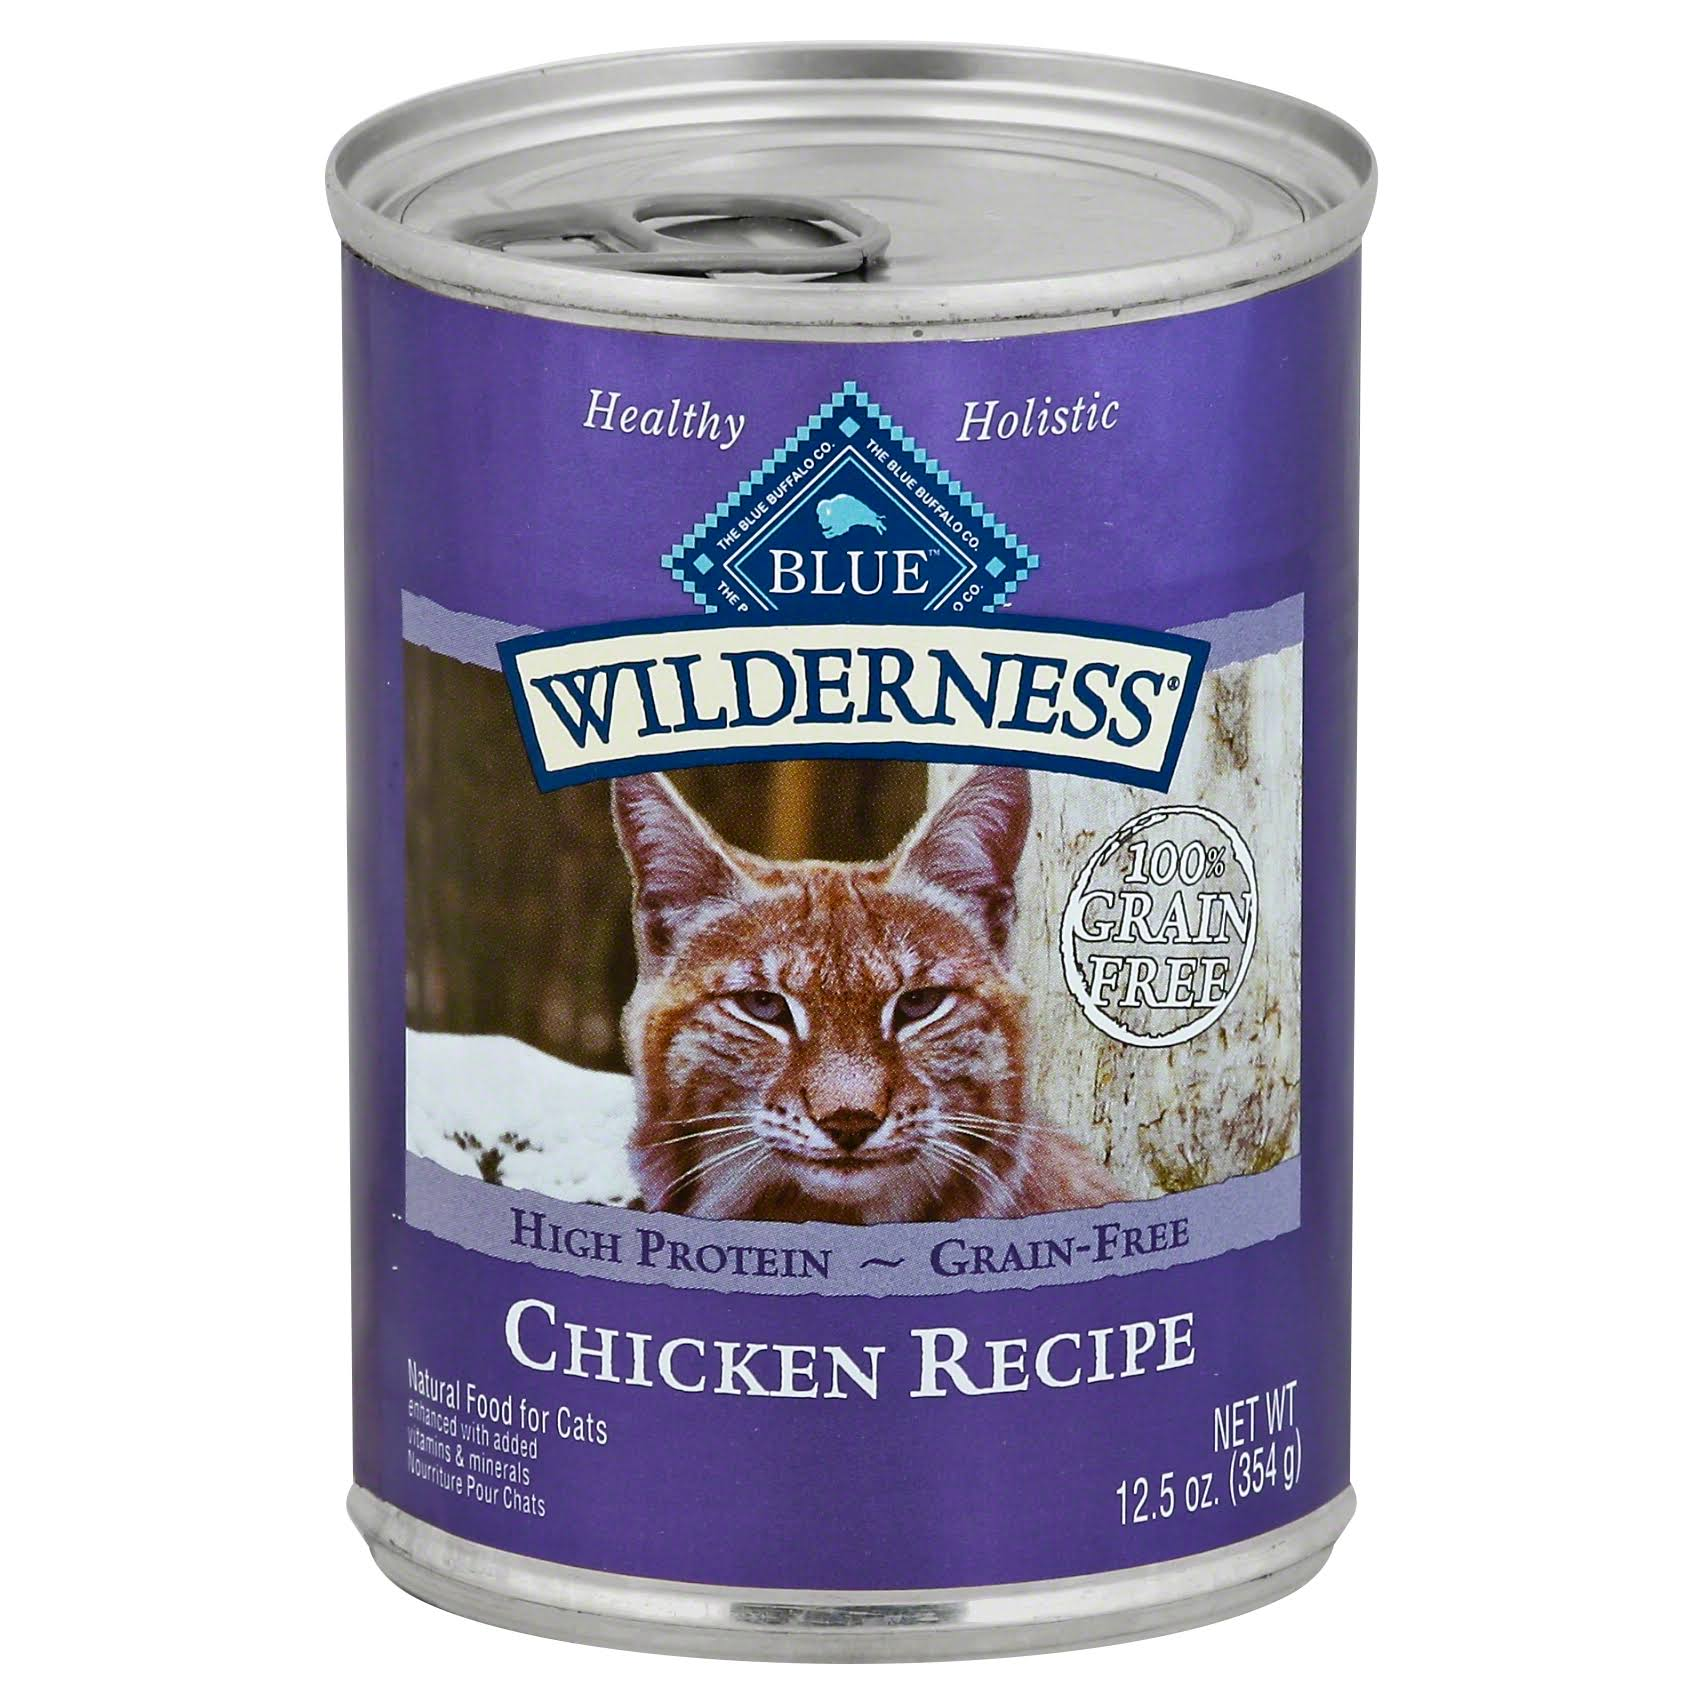 Blue Wilderness Food for Cats, Natural, Chicken Recipe - 12.5 oz